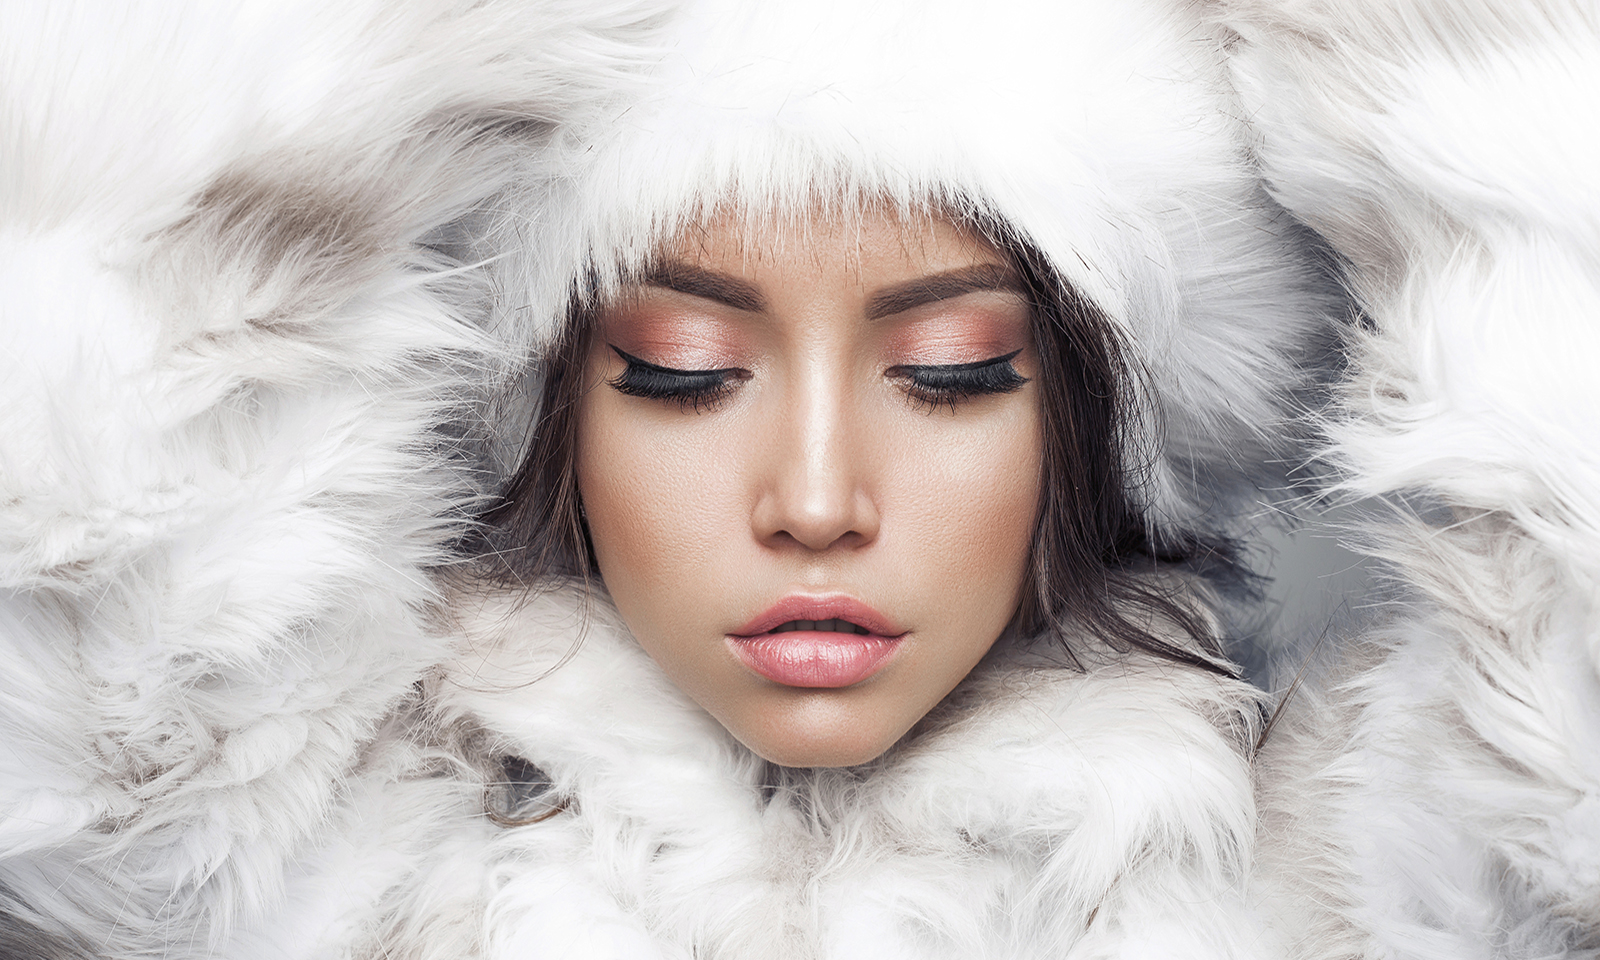 cbd-and-beauty-cbd-on-the-skin-woman-with-flawless-skin-in-winter-attire